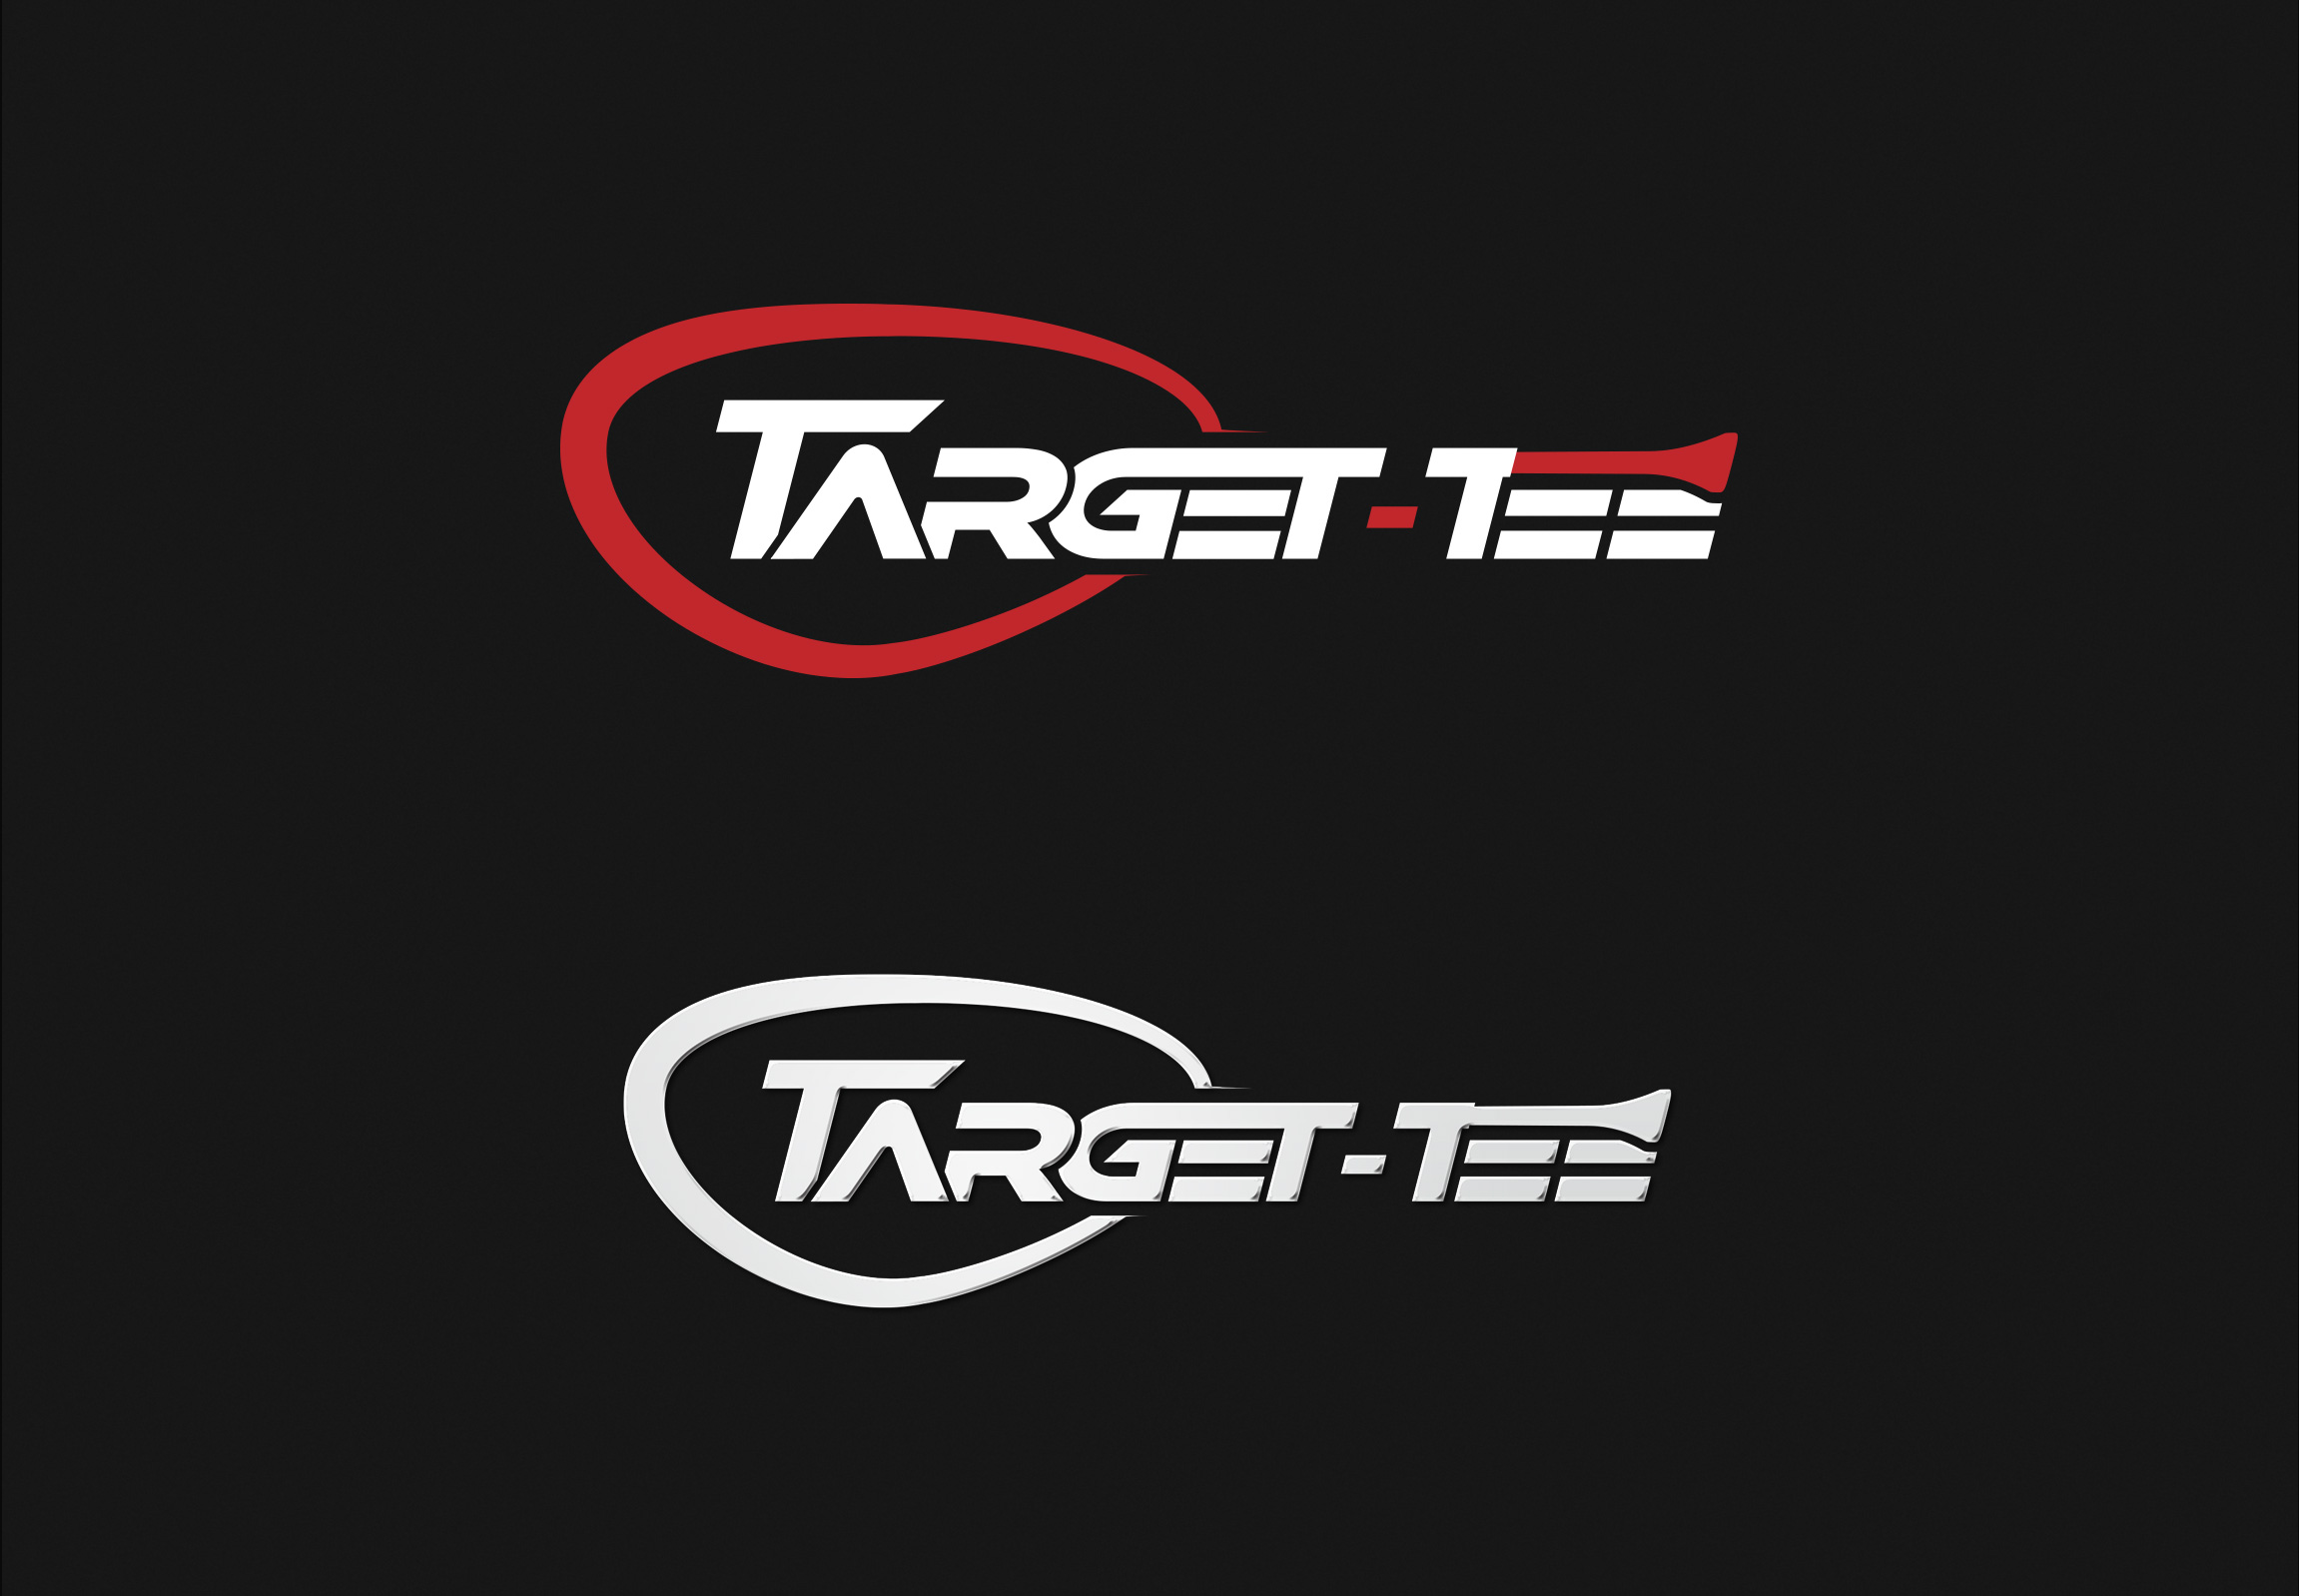 Logo Design by olii - Entry No. 111 in the Logo Design Contest Imaginative Logo Design for TARGET-TEE.